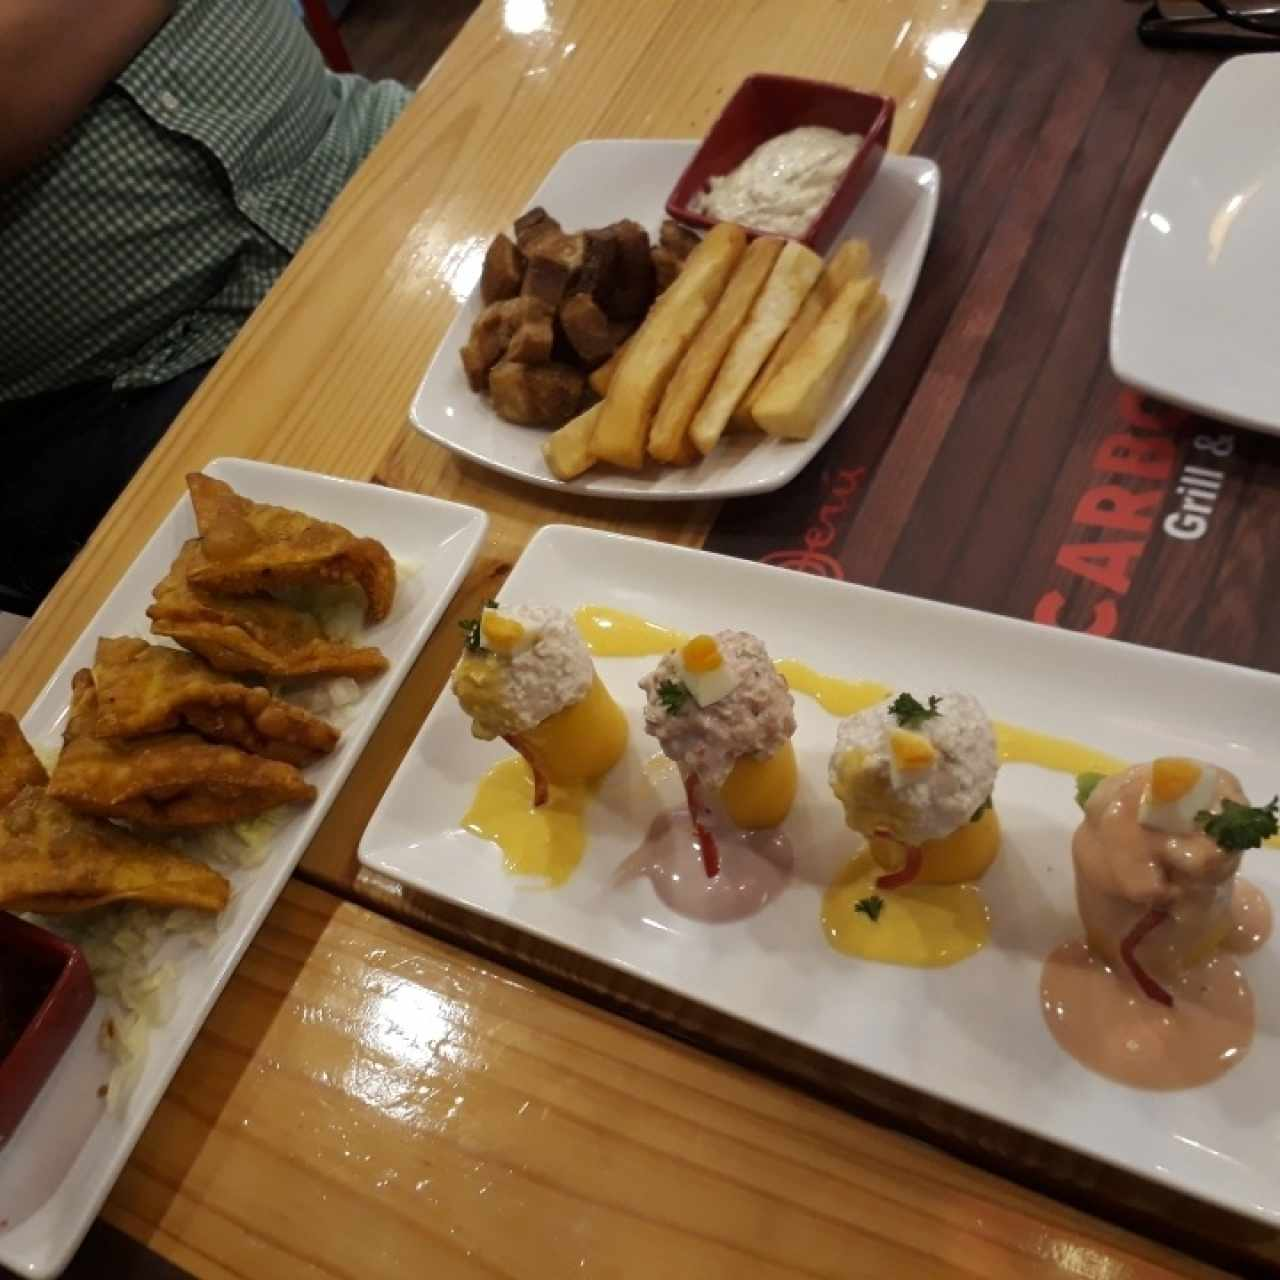 Wantones de res, chicharrones y Causa Mixta